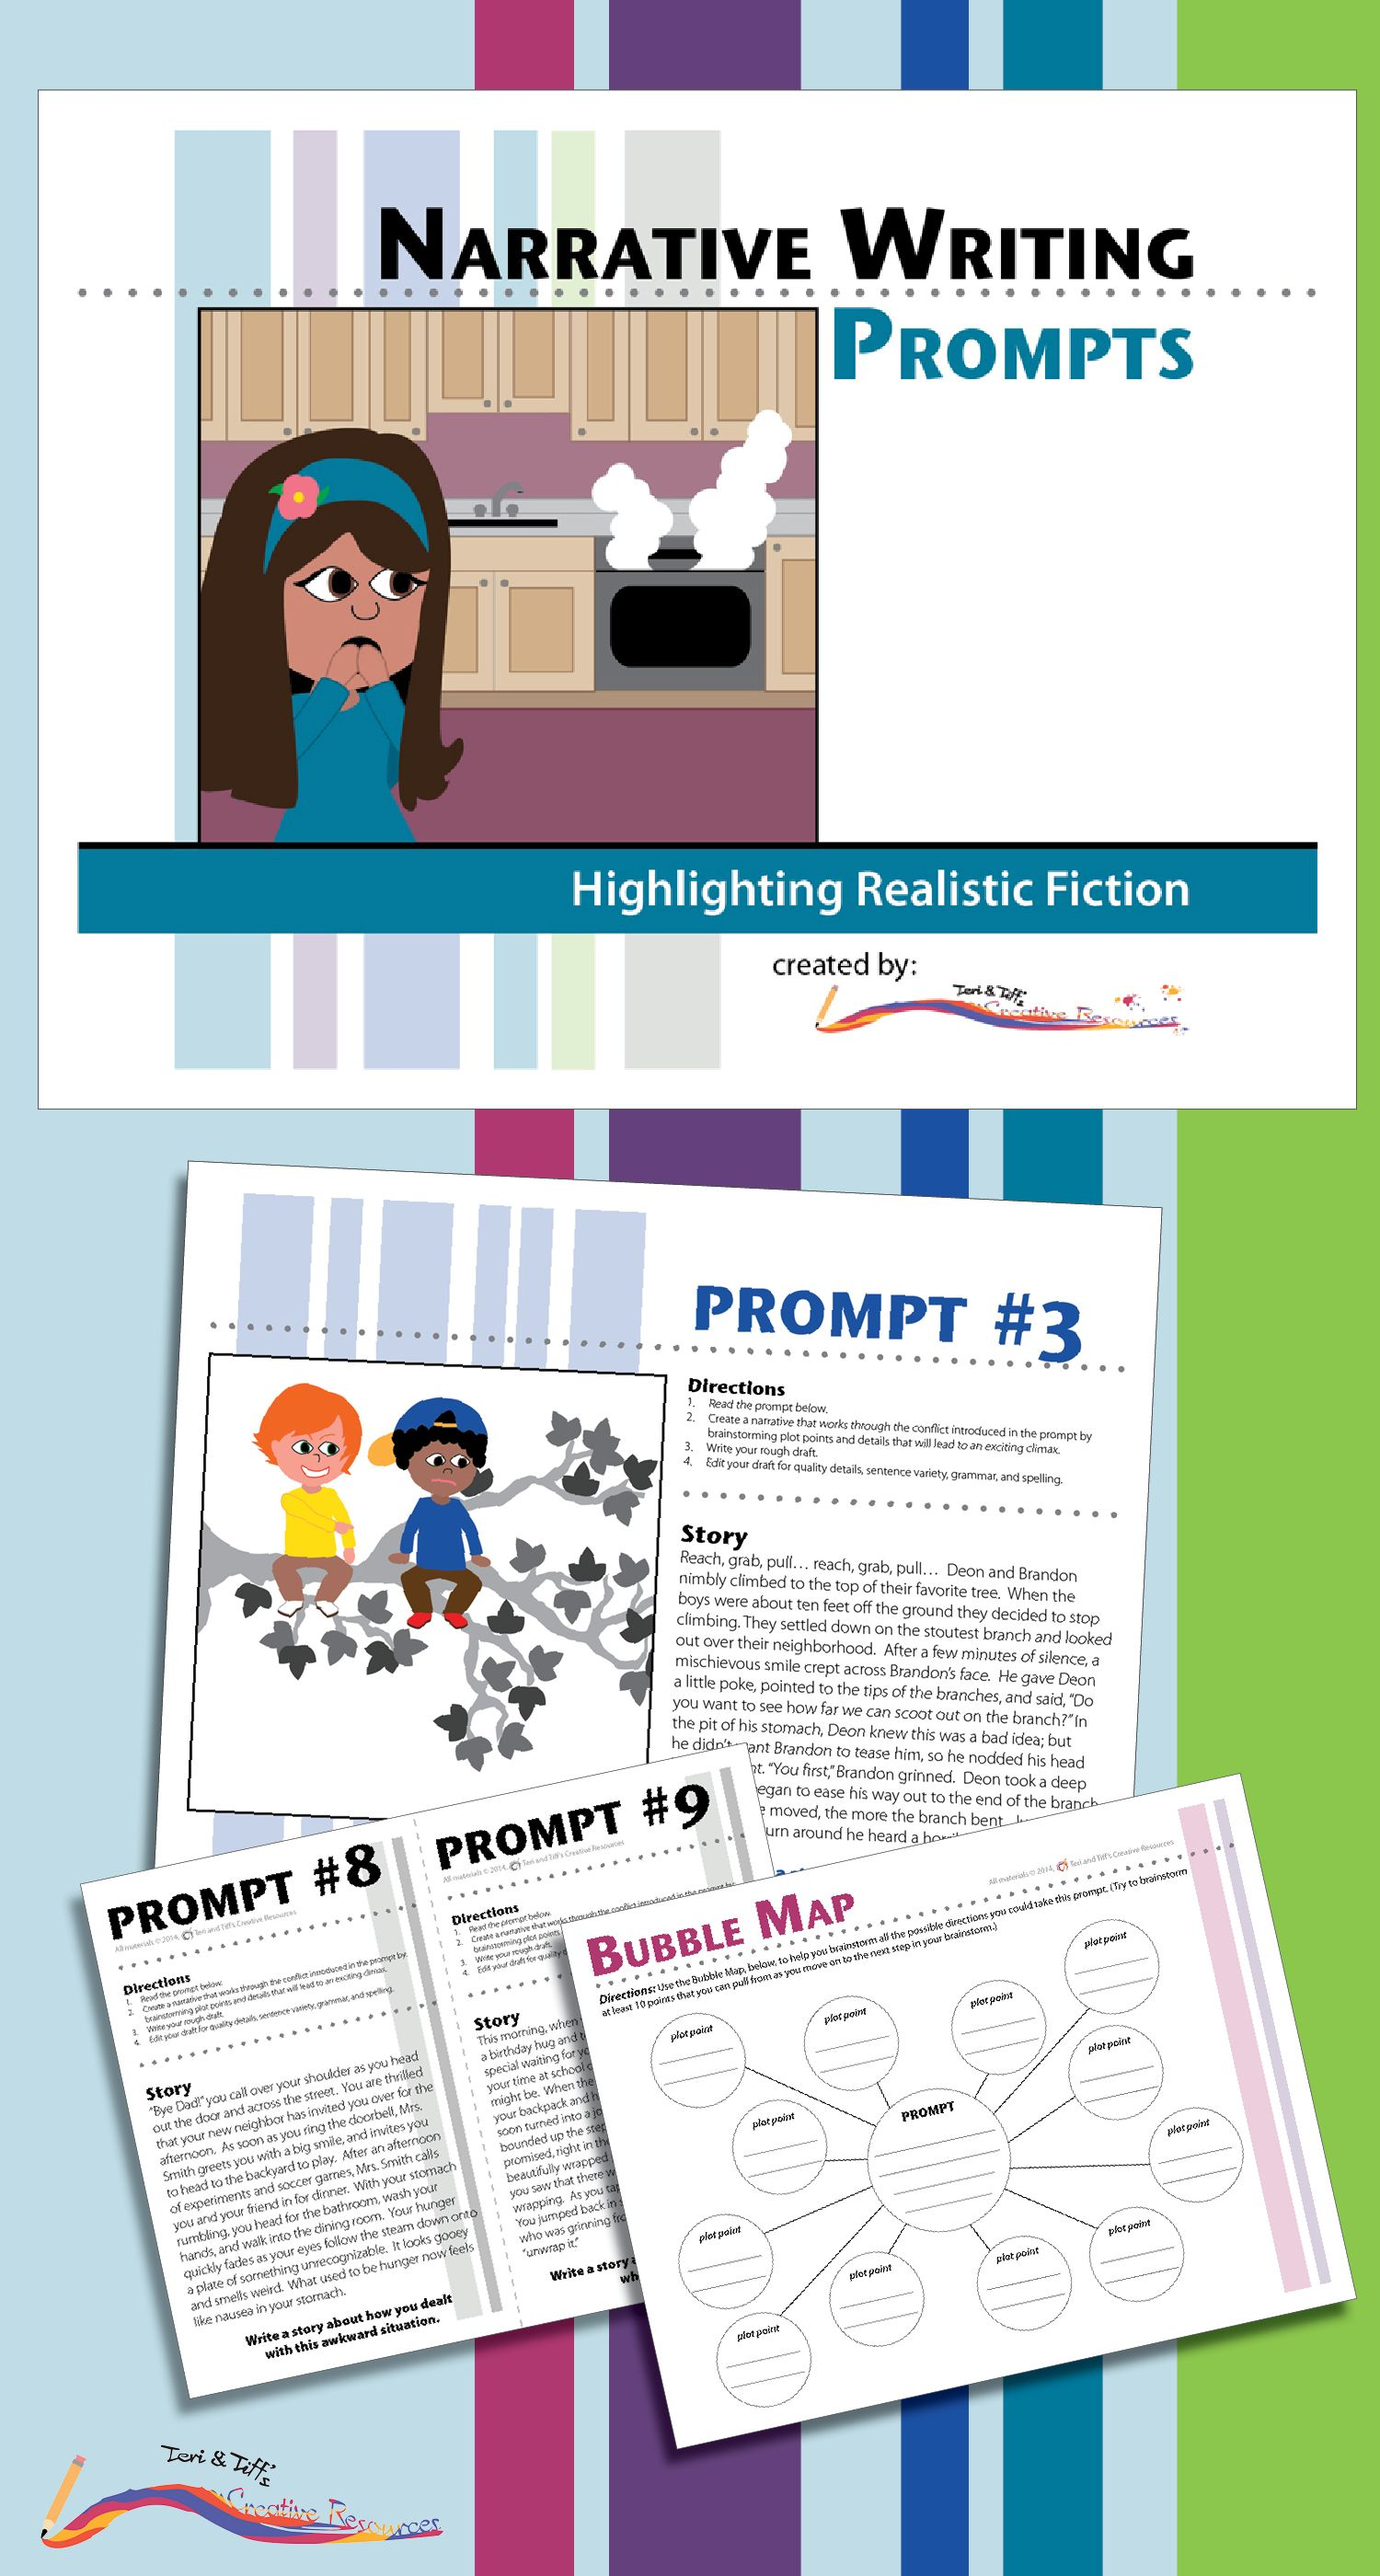 Narrative Writing Prompts Highlighting Realistic Fiction